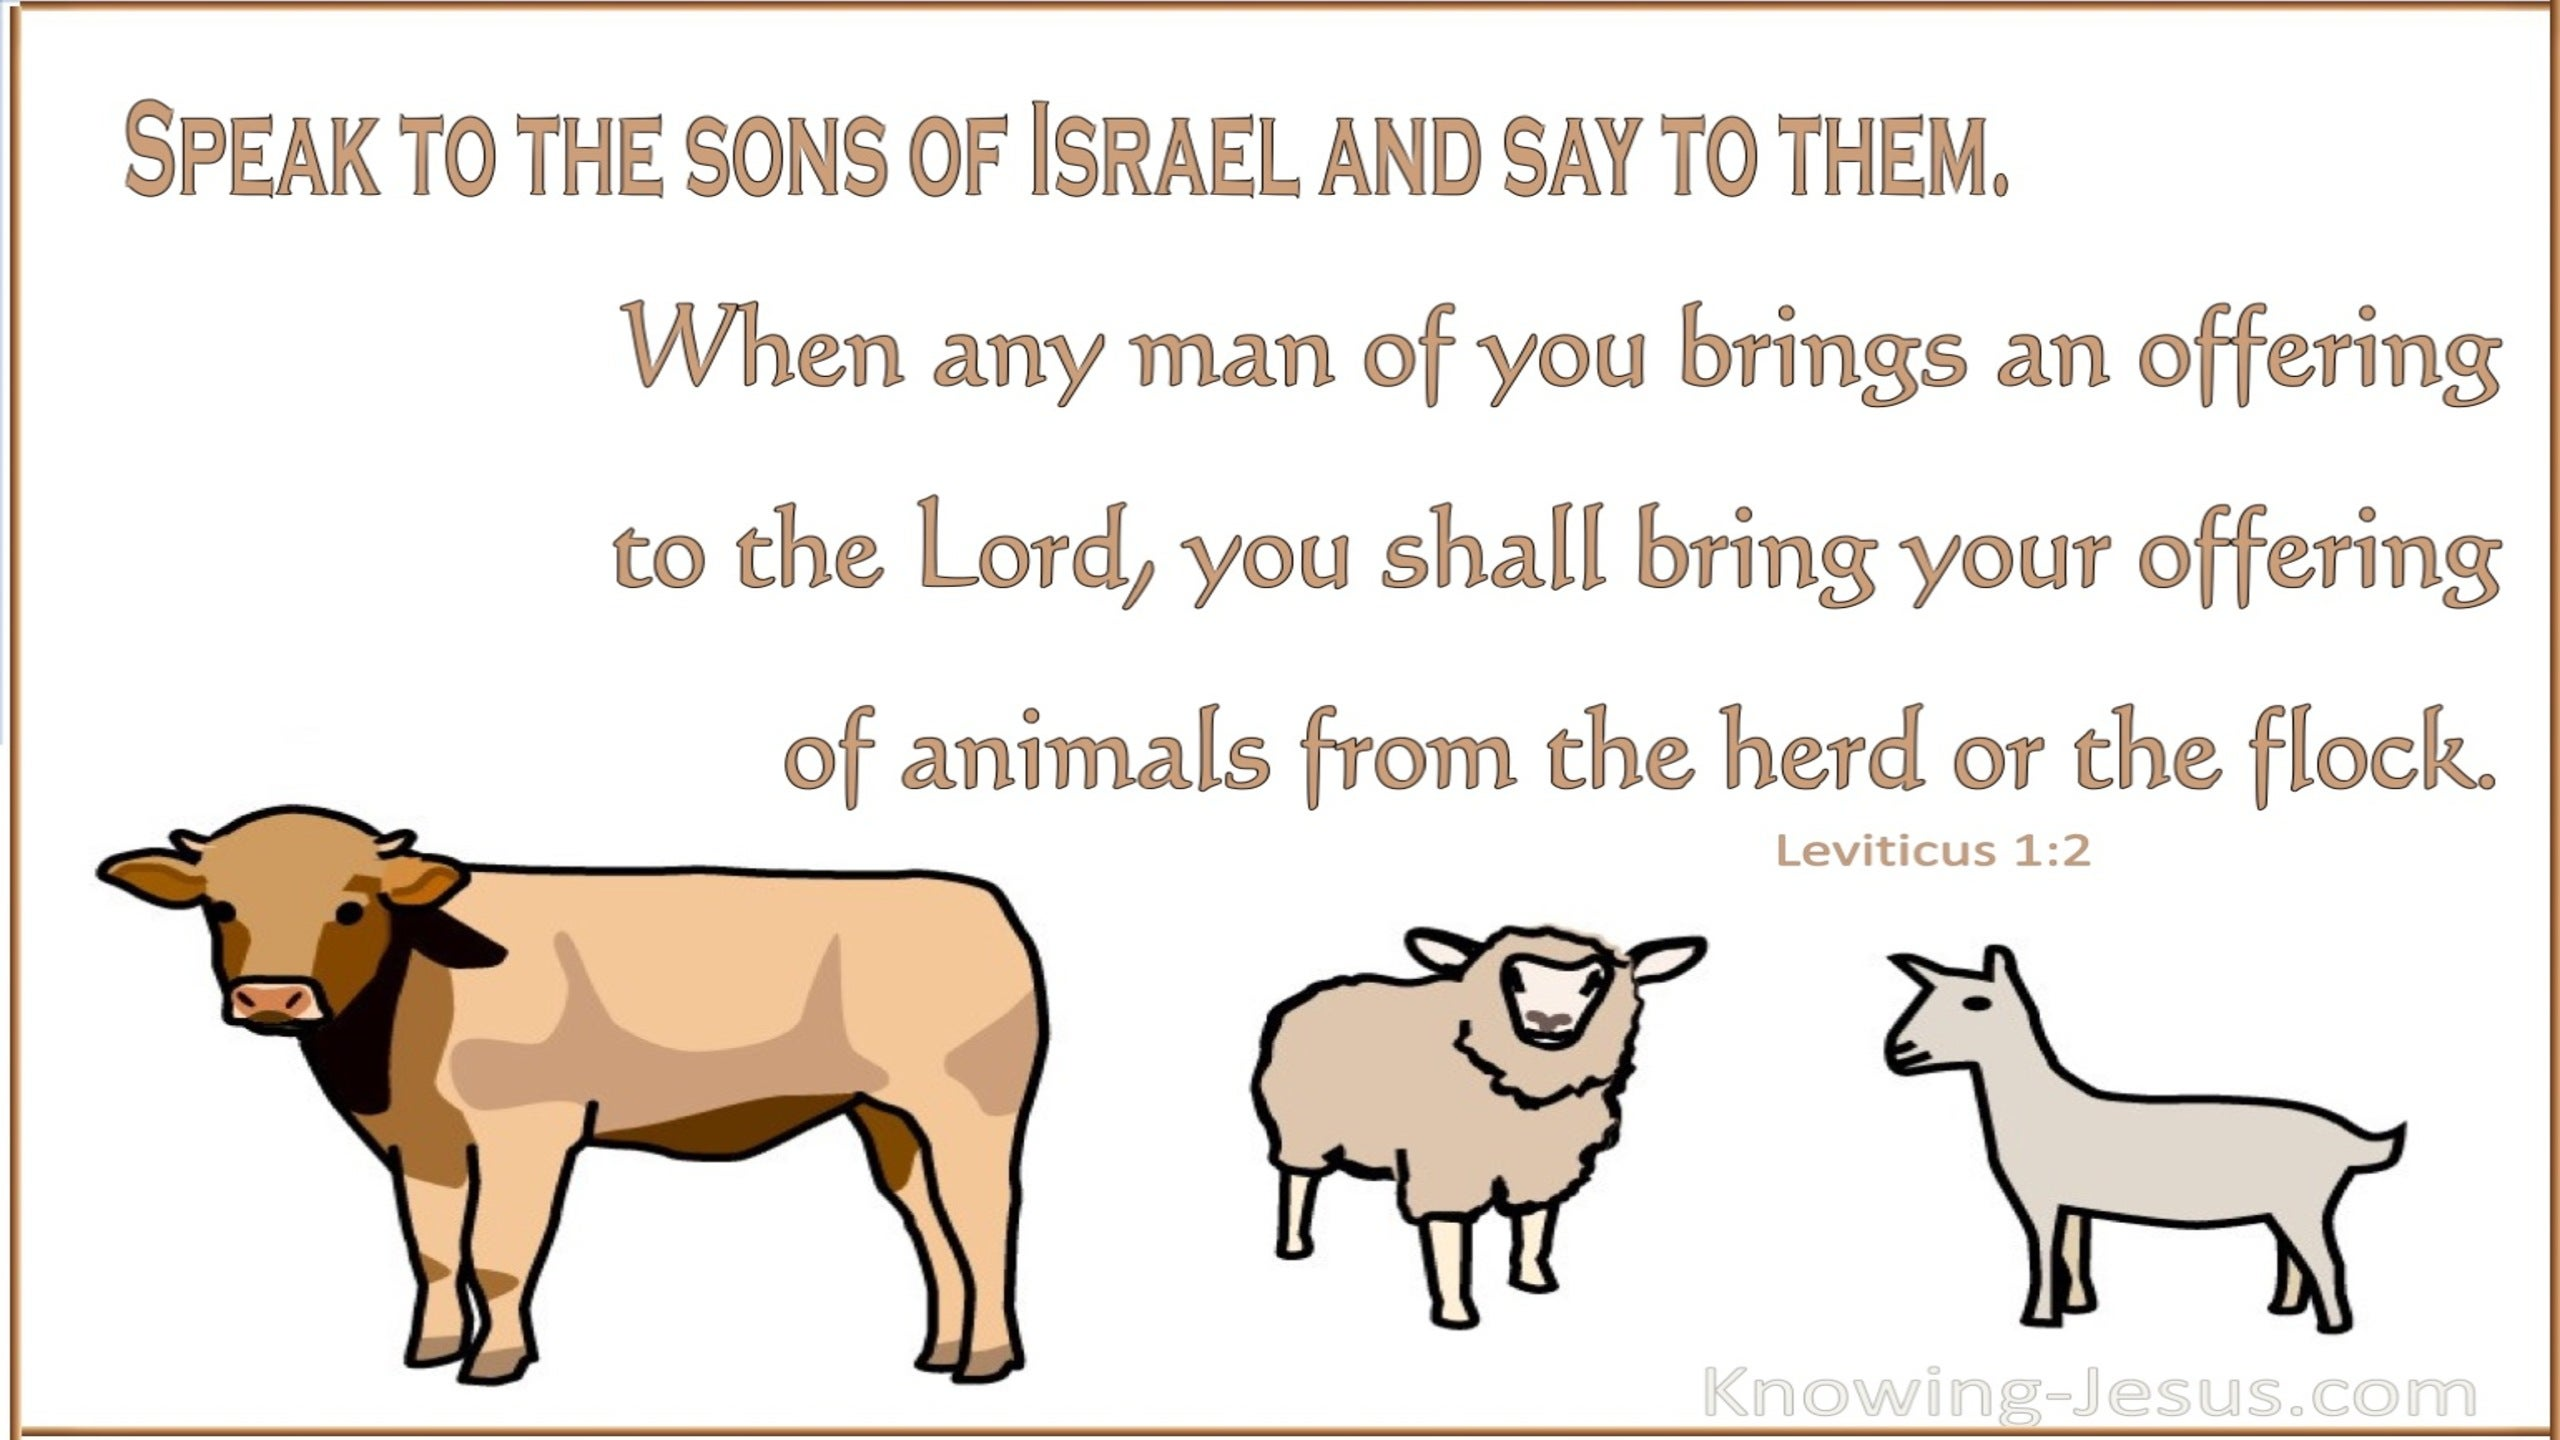 Leviticus 1:2 Bring Your Offering Of Animals From The Herd Or The Flock (white)